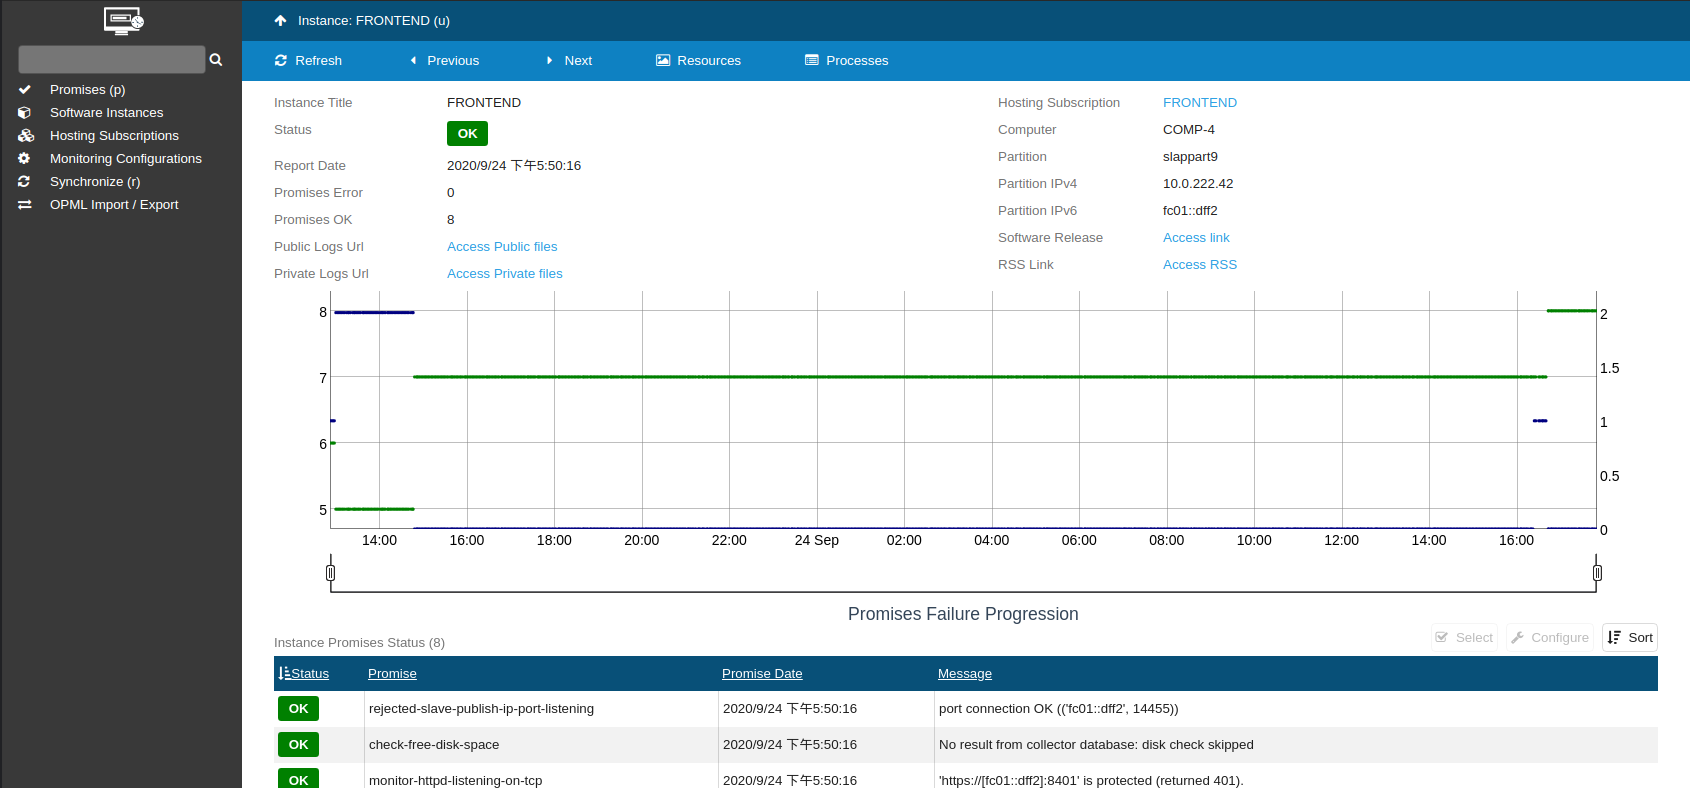 Monitor Interface - Instance View